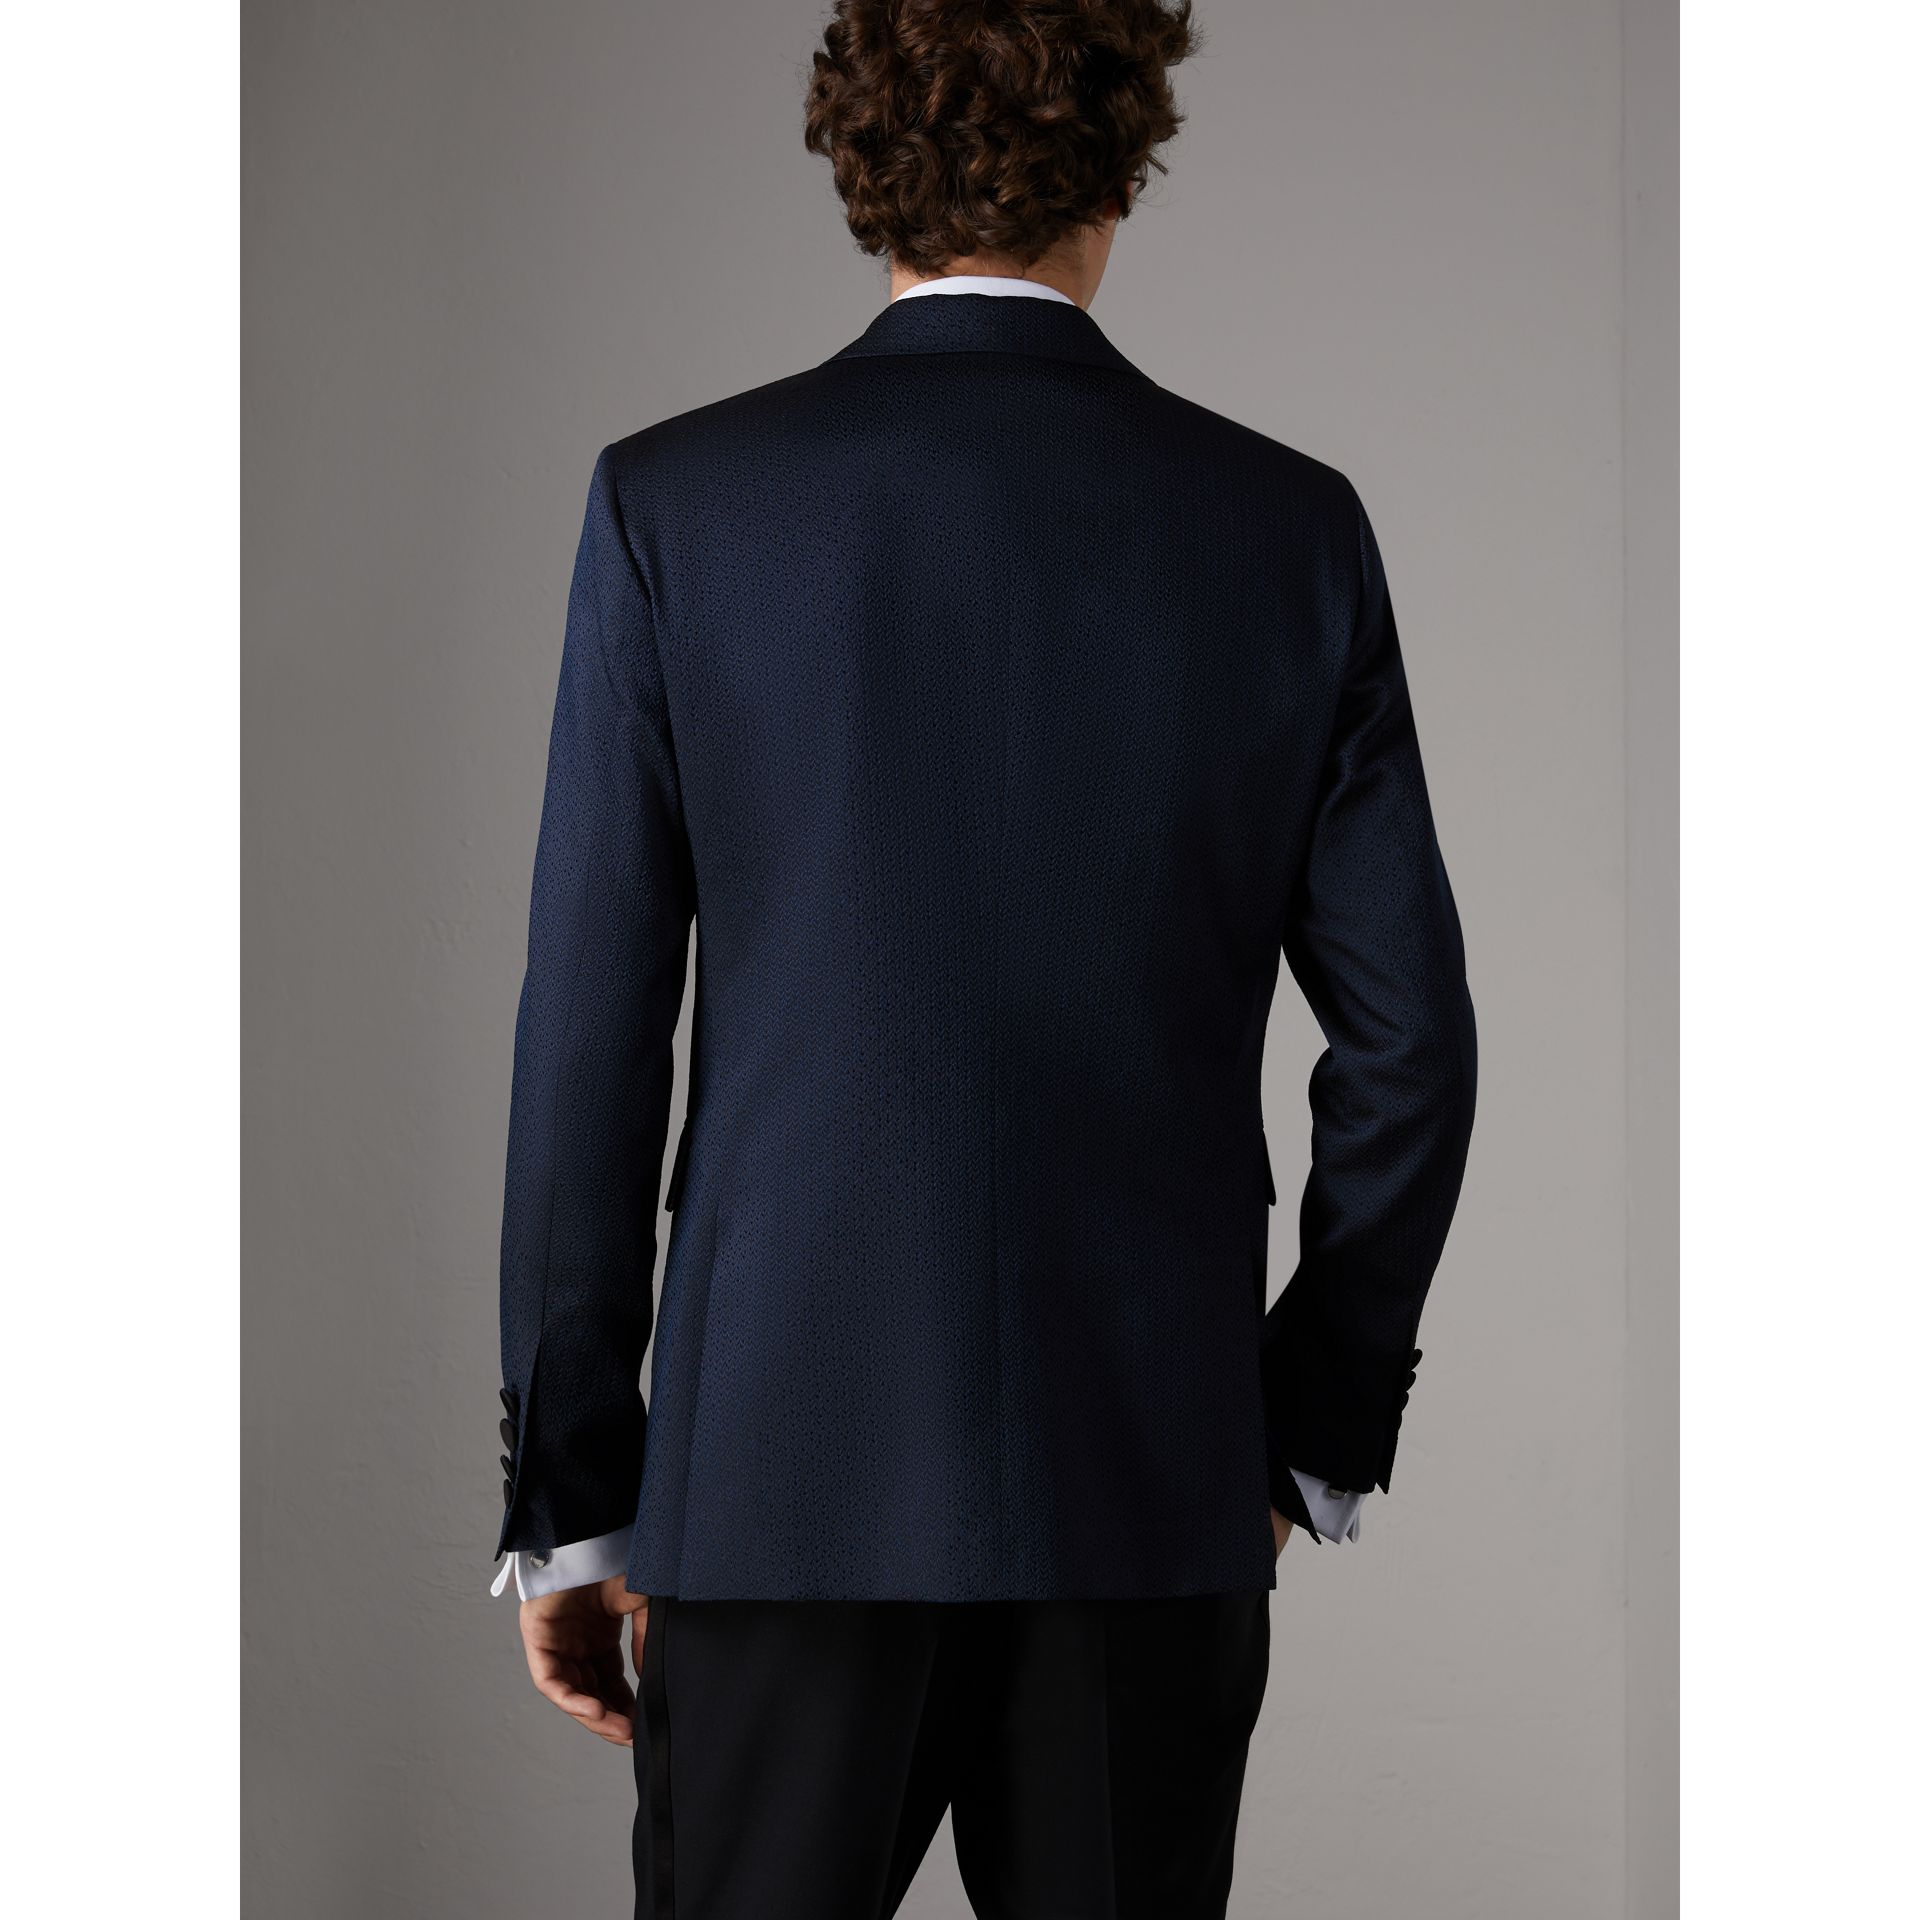 Soho Fit Jacquard Evening Jacket in Navy - Men | Burberry - gallery image 2